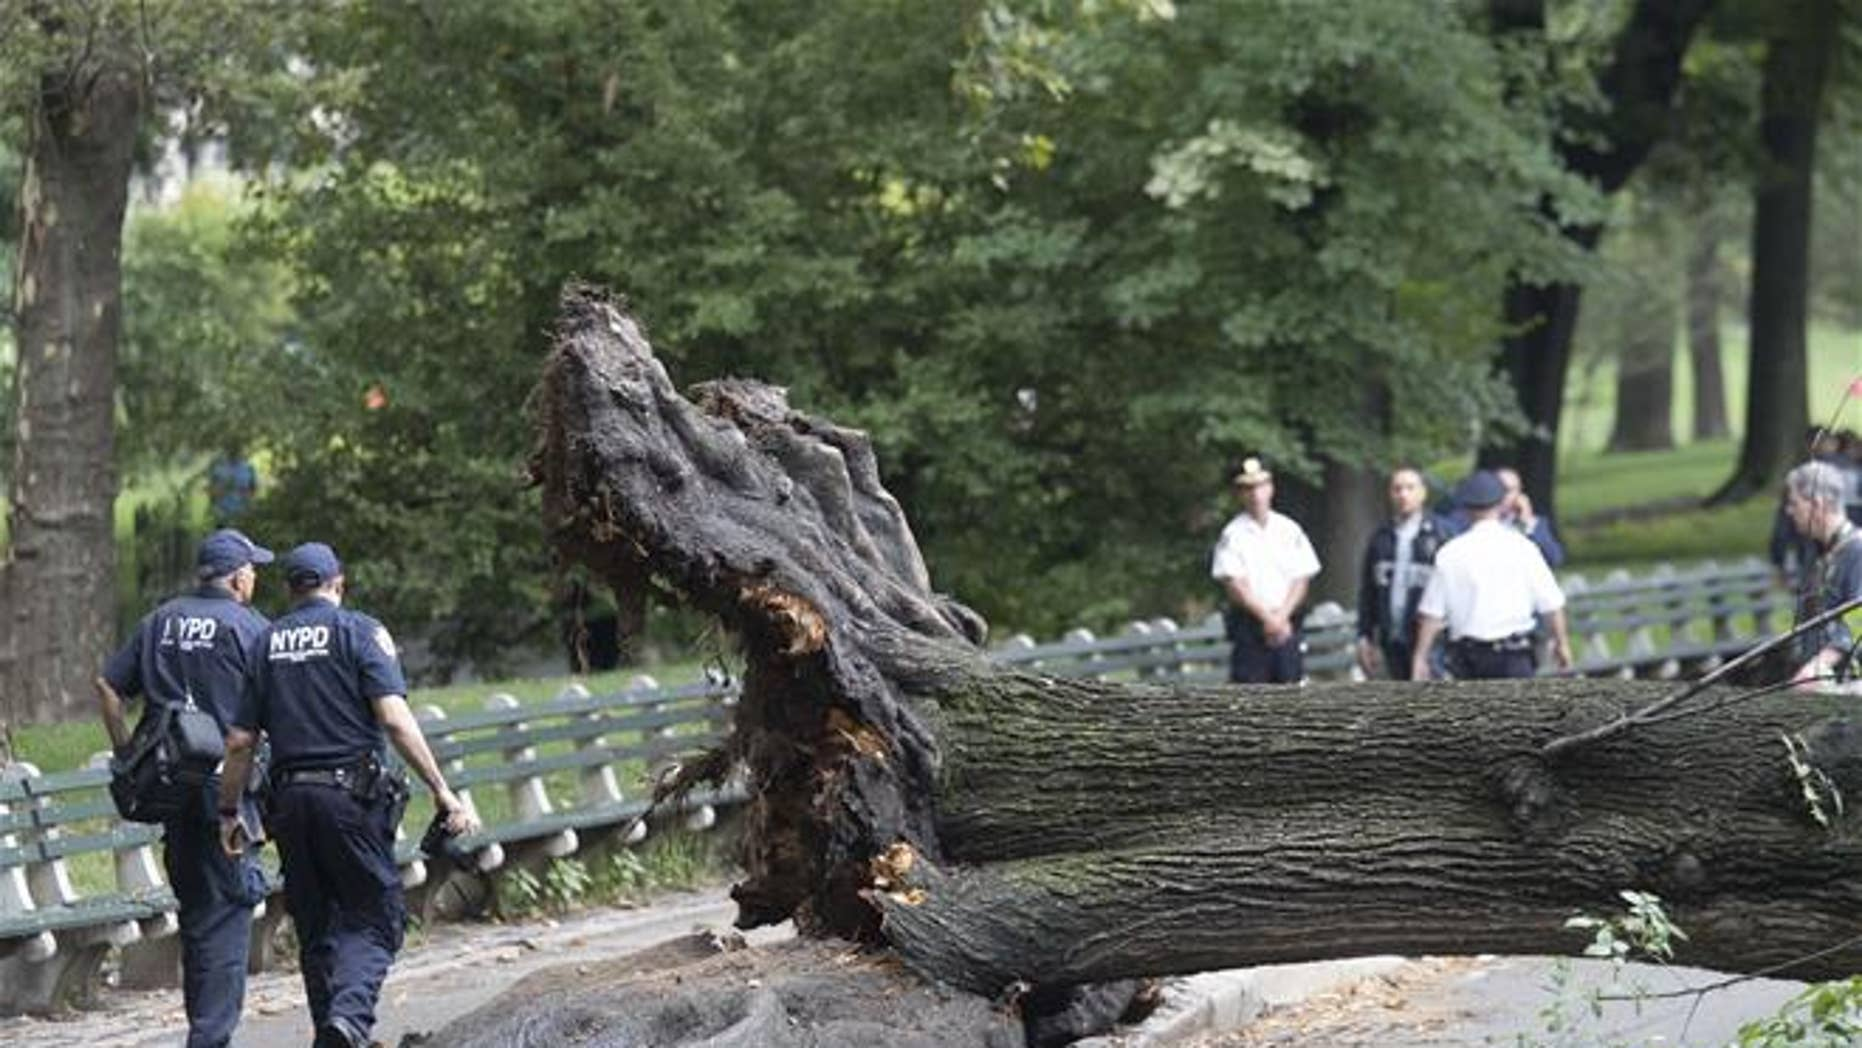 New York City Police officers walk past the base of an overturned fallen tree Aug. 15 in New York's Central Park. A woman is suing the city after the tree fell on her and her three young children.